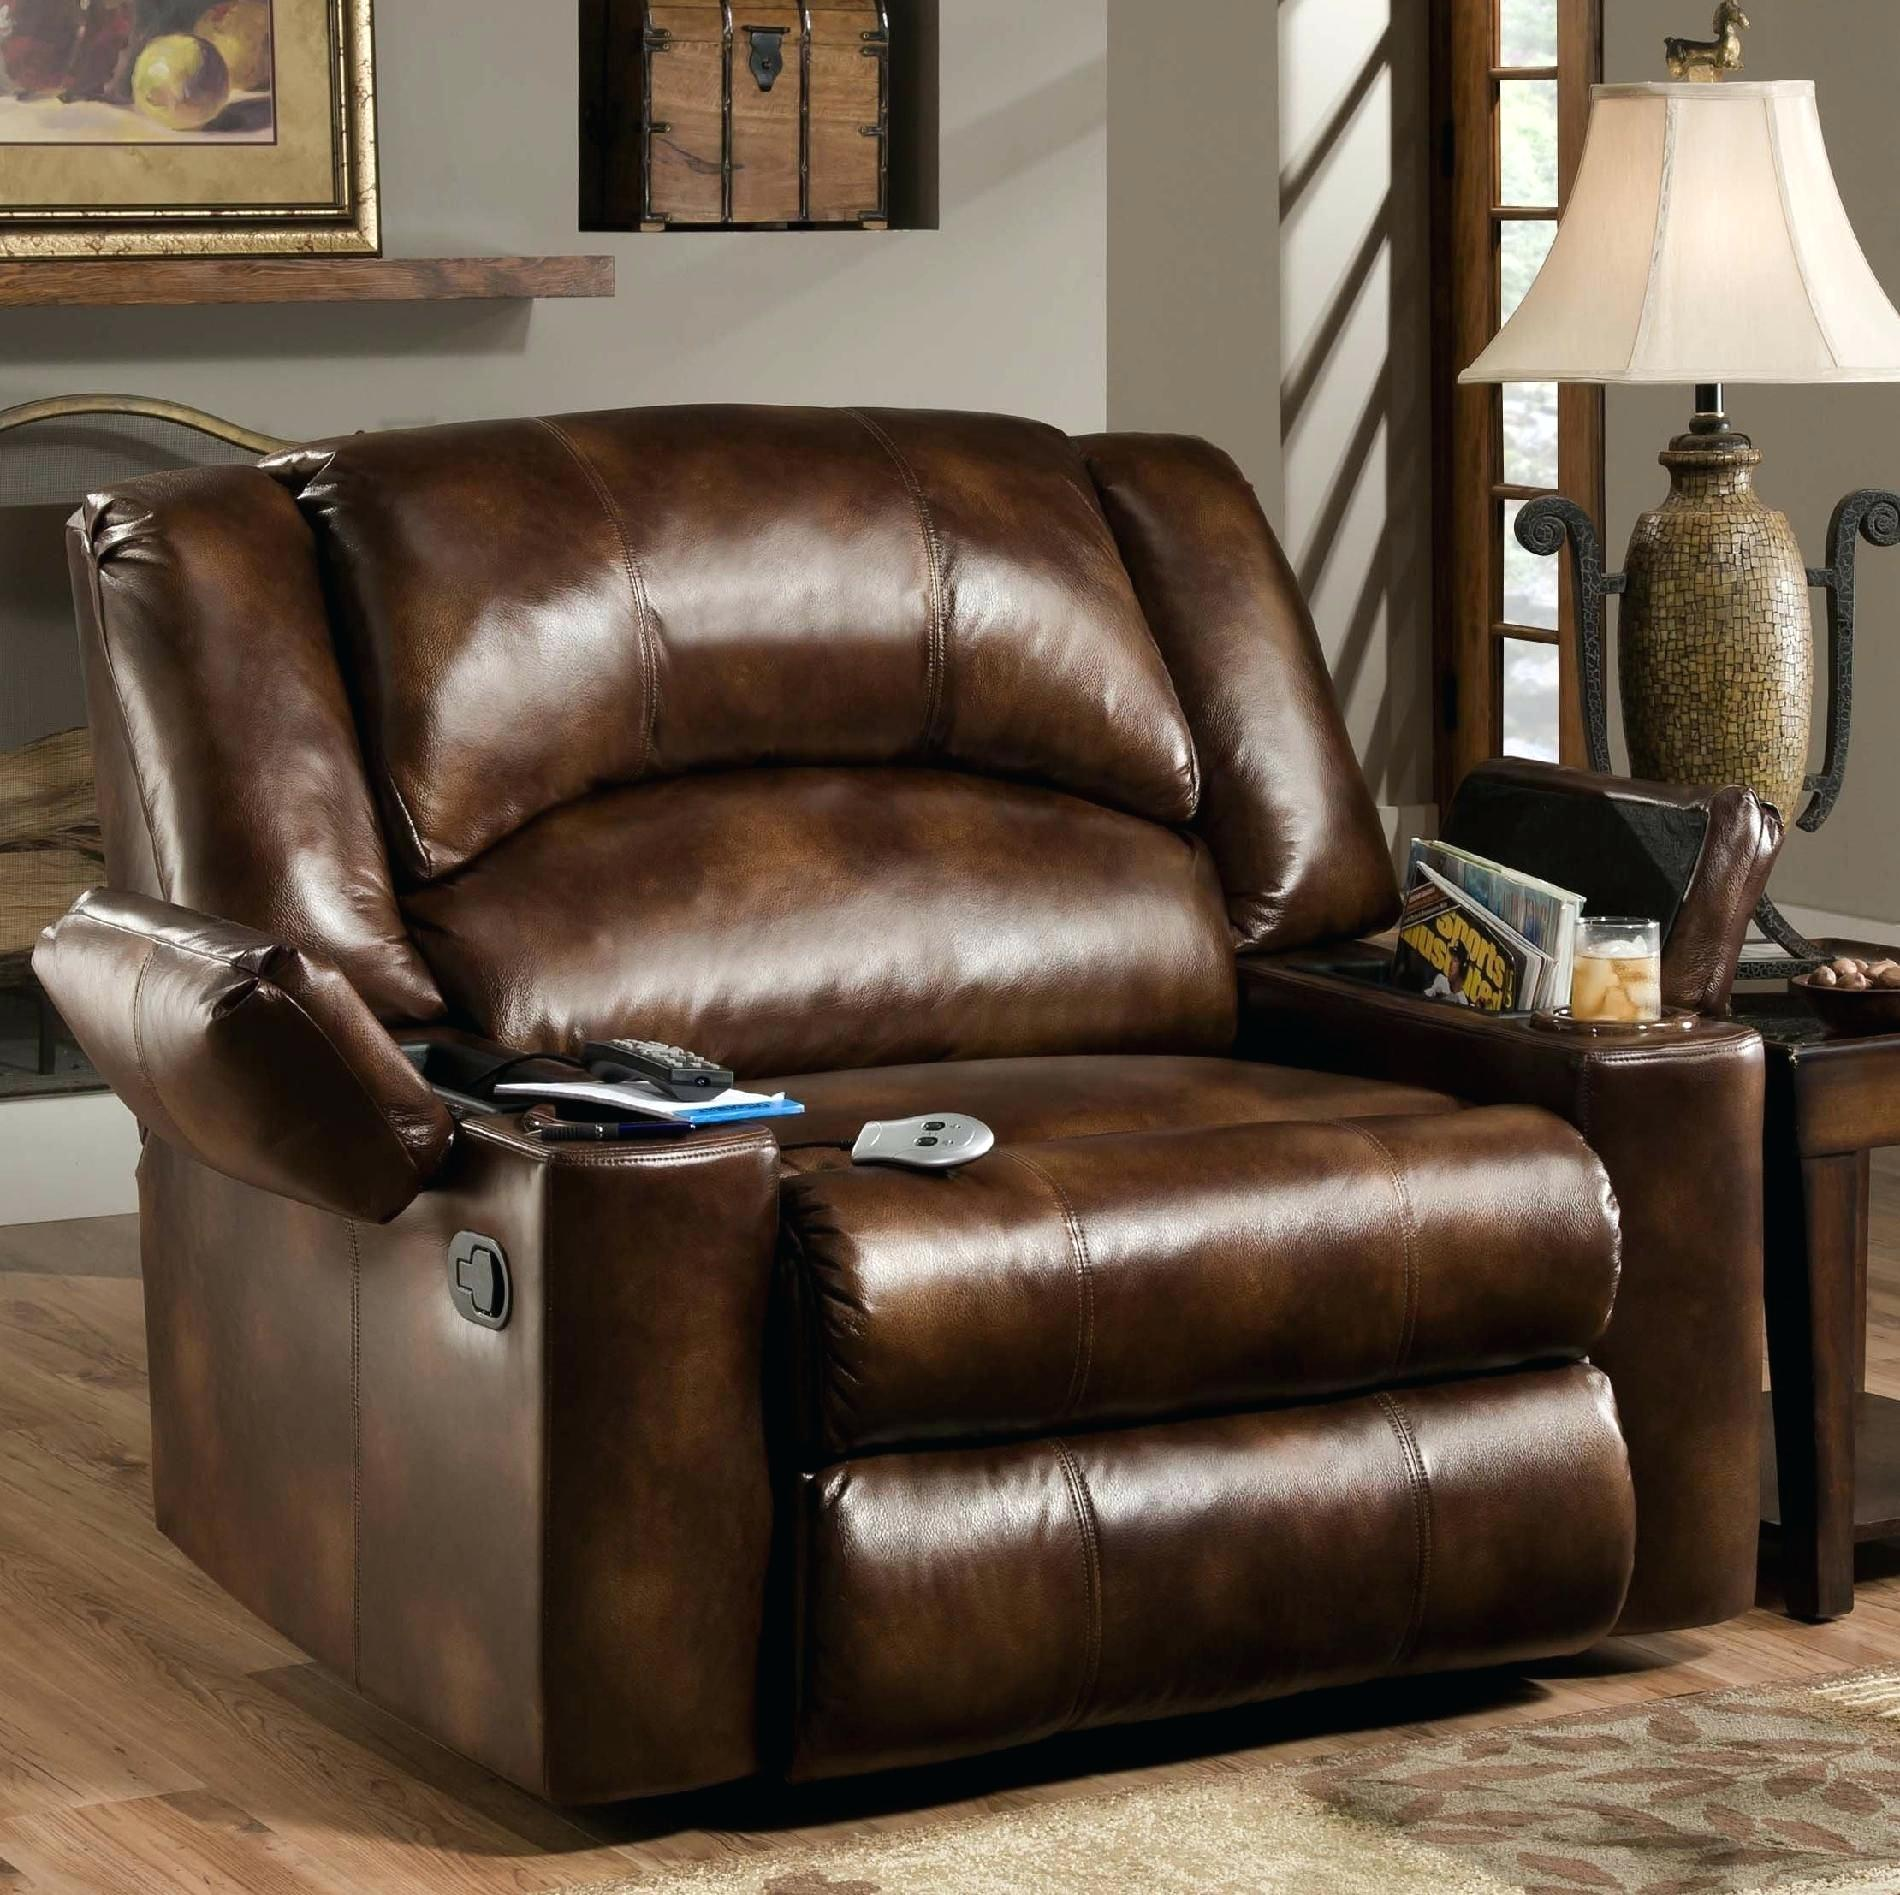 Reclining Chair Outdoor | Sears Recliners | Recliner Couches